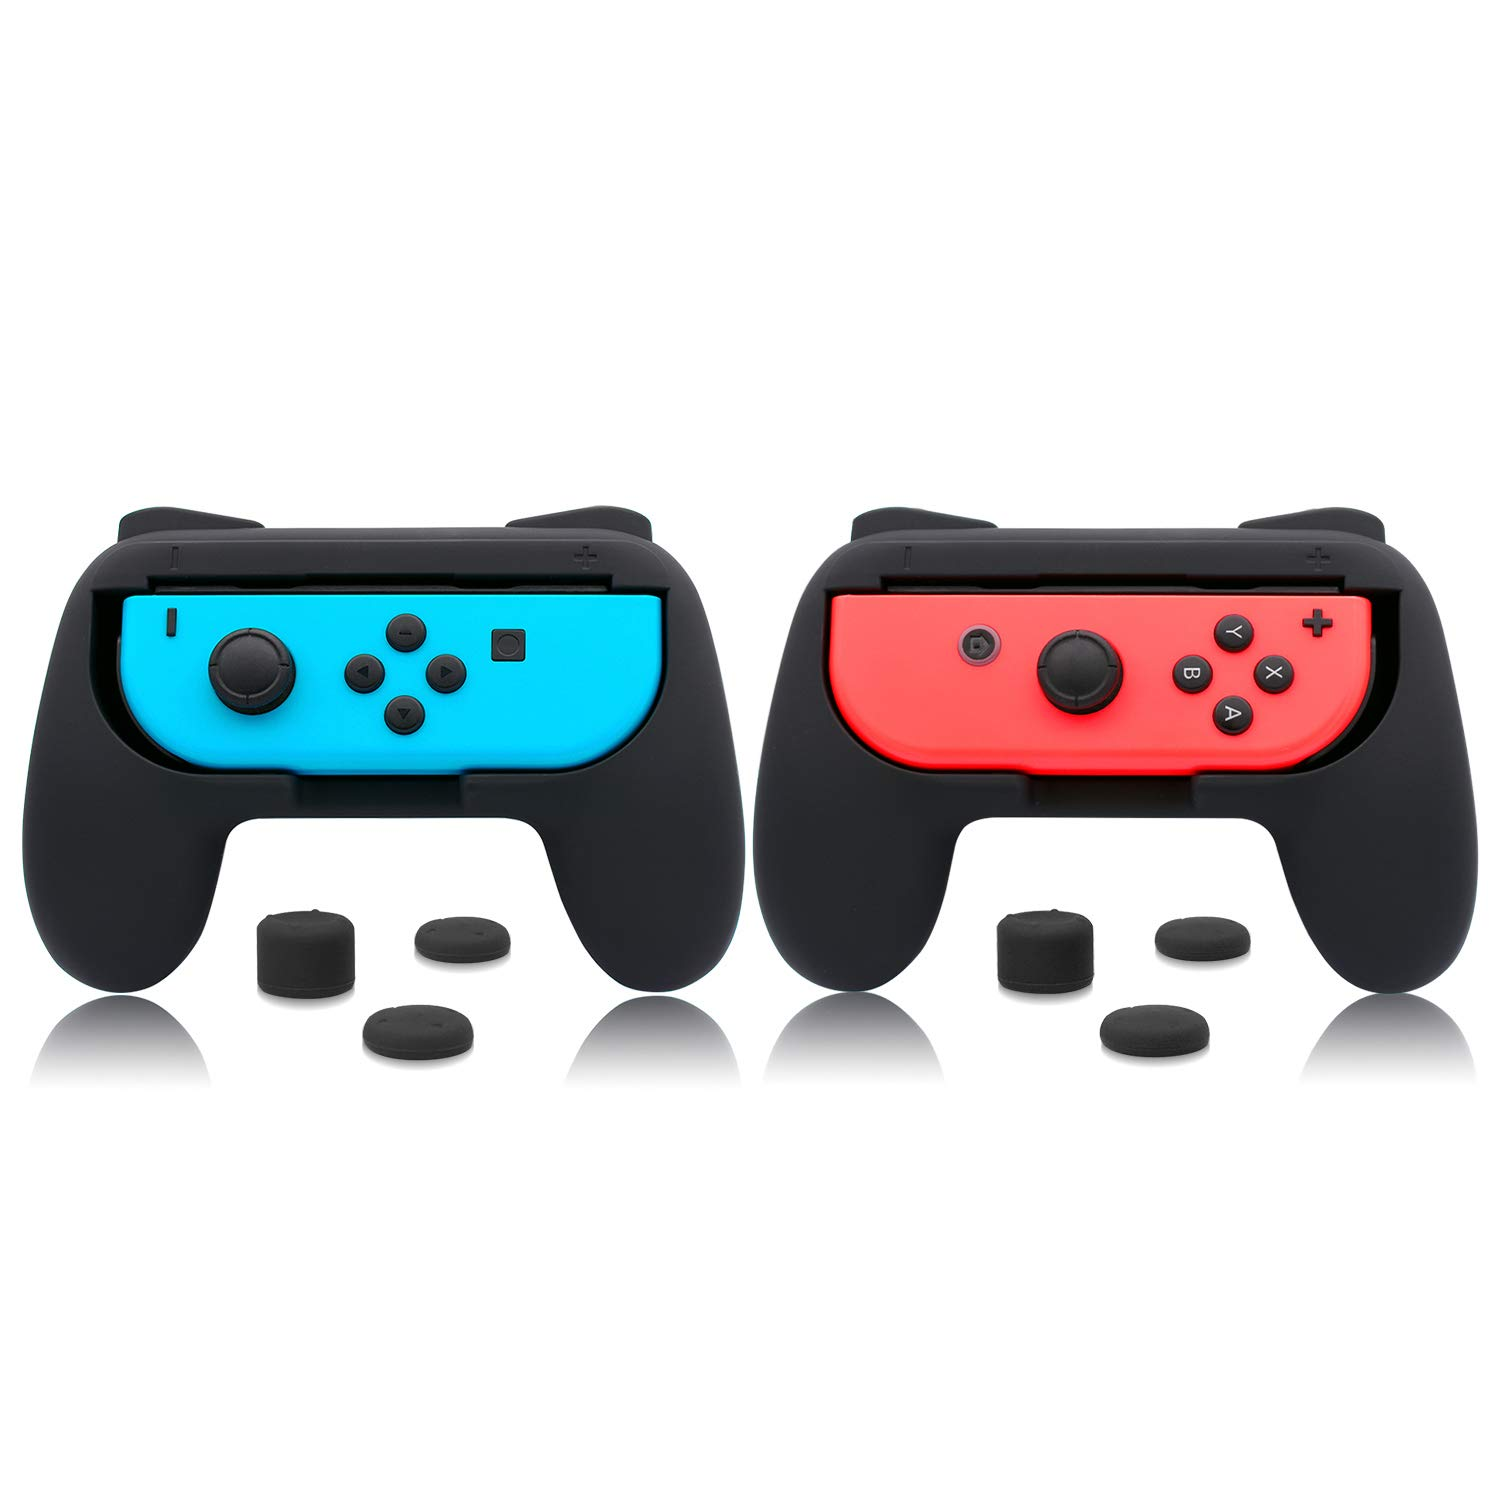 Grips for Nintendo Switch Joy-Con, FYOUNG Handle Controllers with Rubber Non- Slip Matte Surface for Nintendo Switch Joy Con (2 Packs) (Black) by FYOUNG